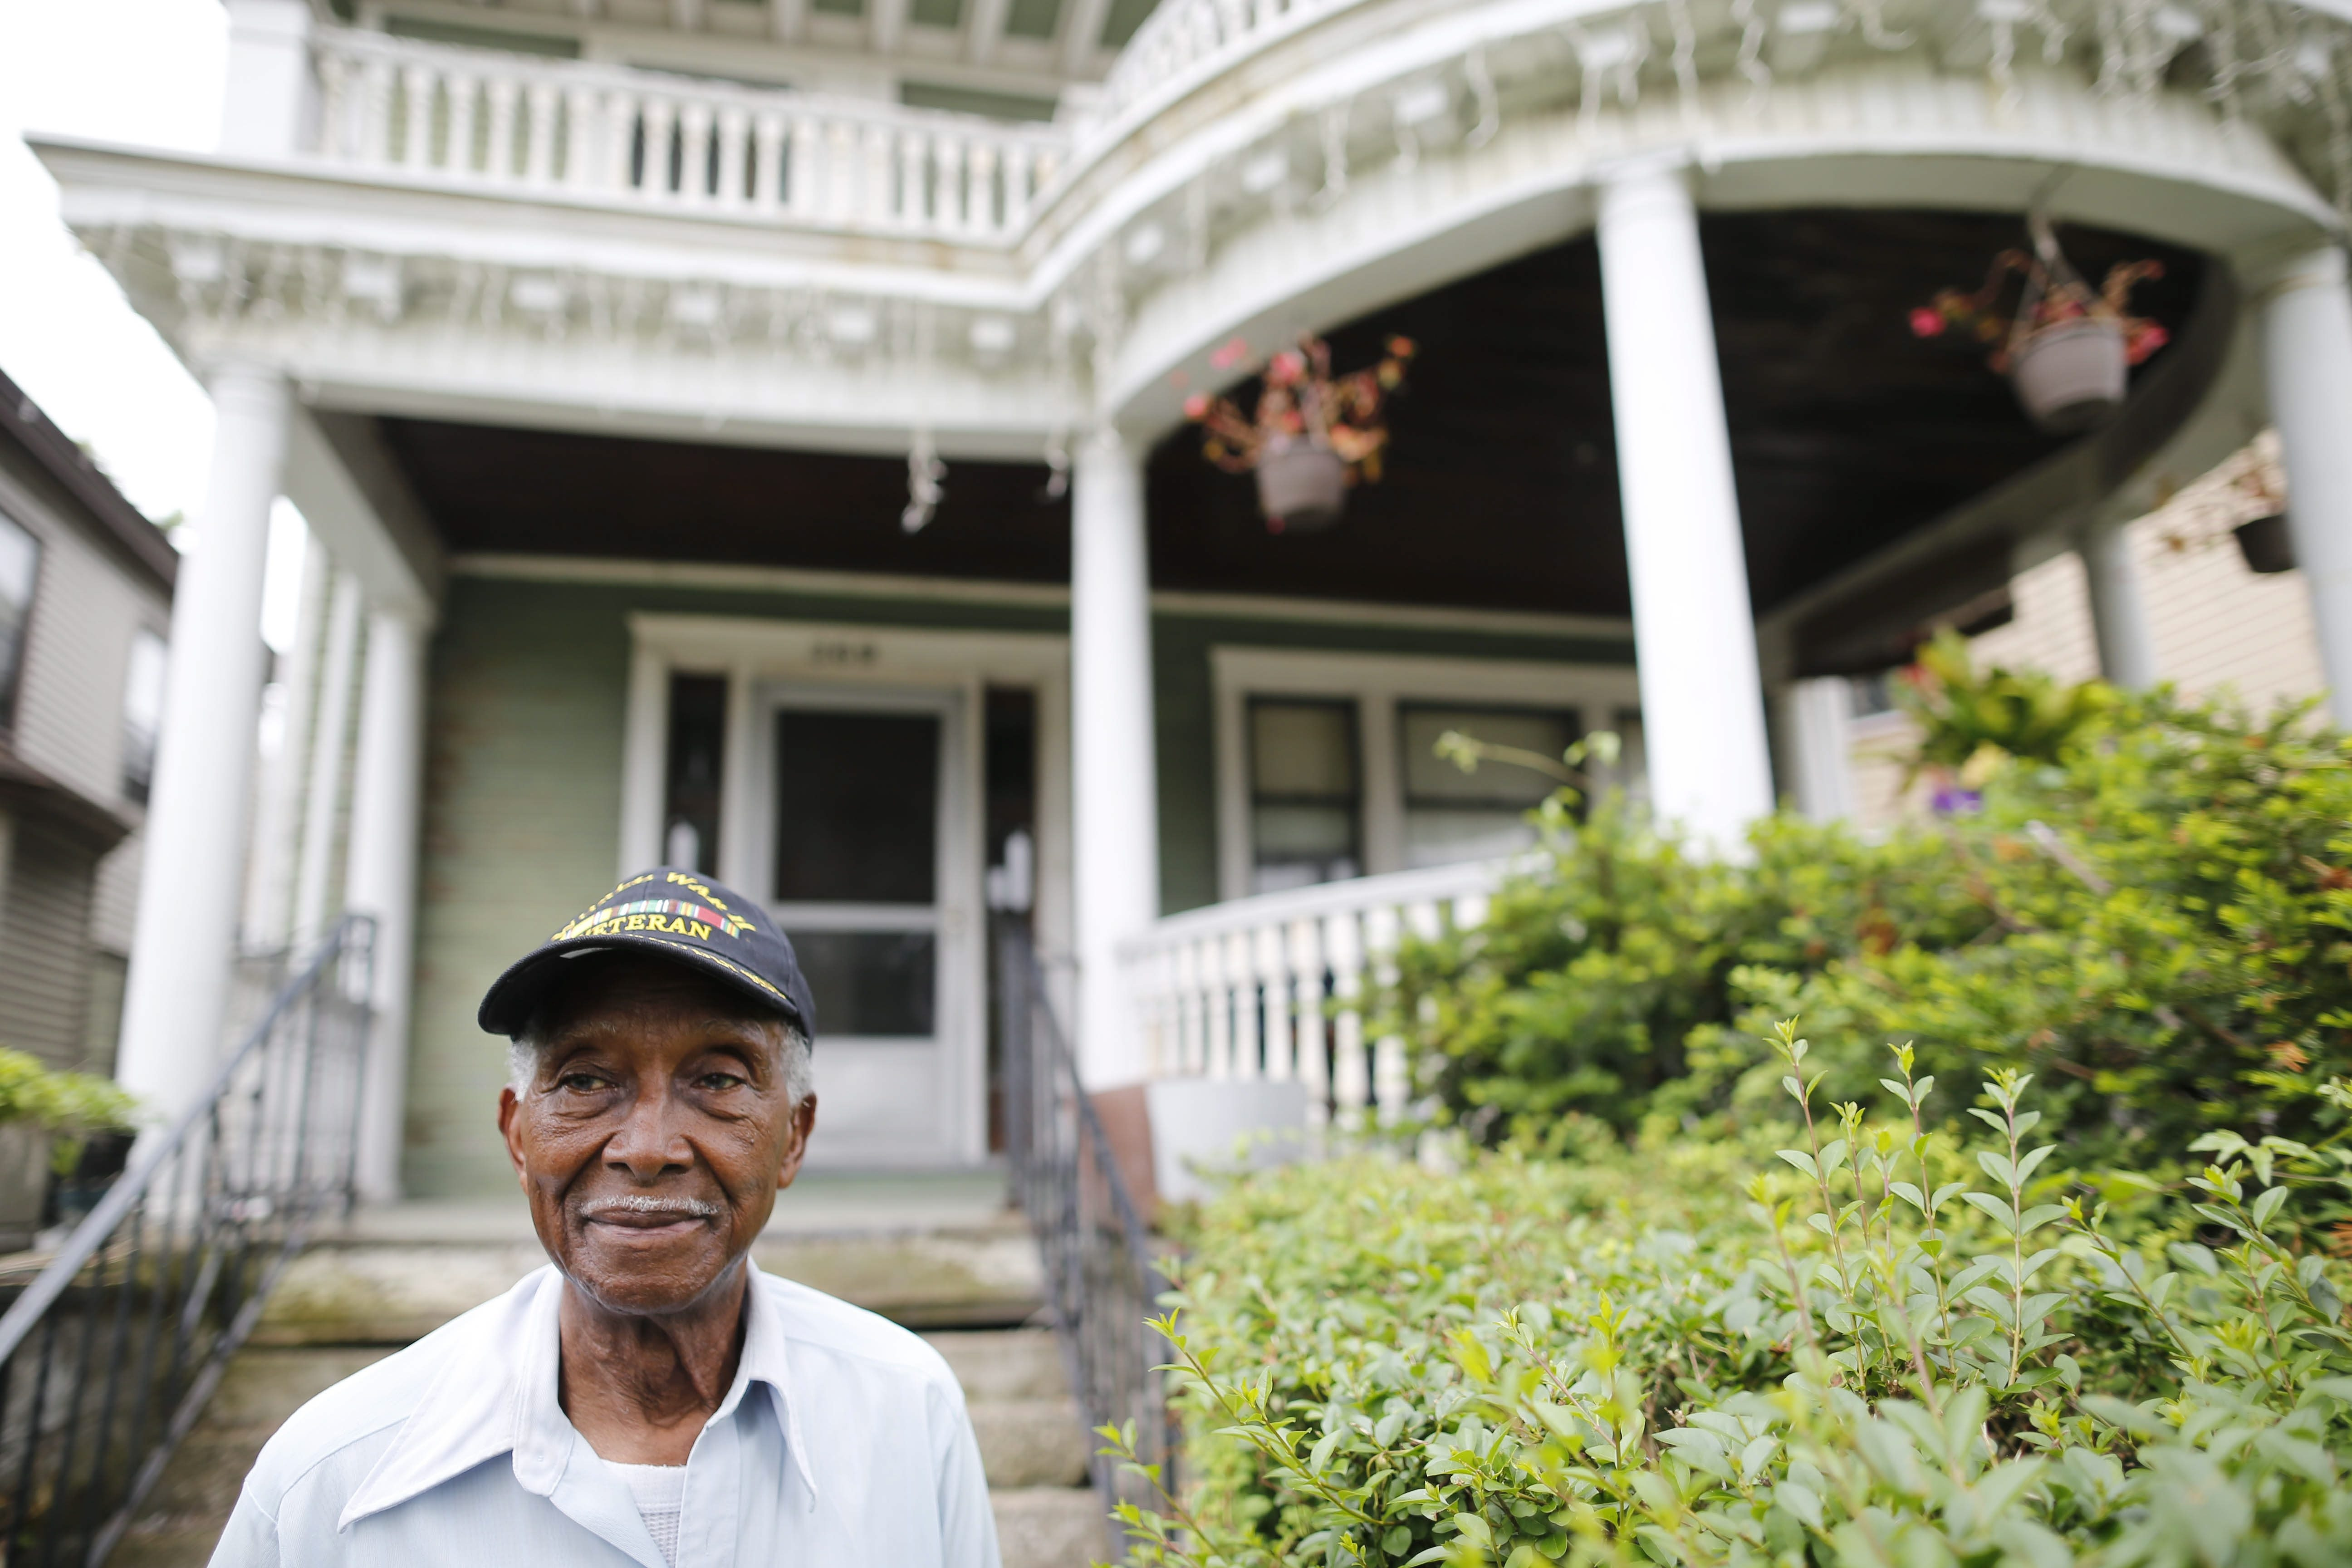 Johnnie H. Hodges Sr. was evicted in July.